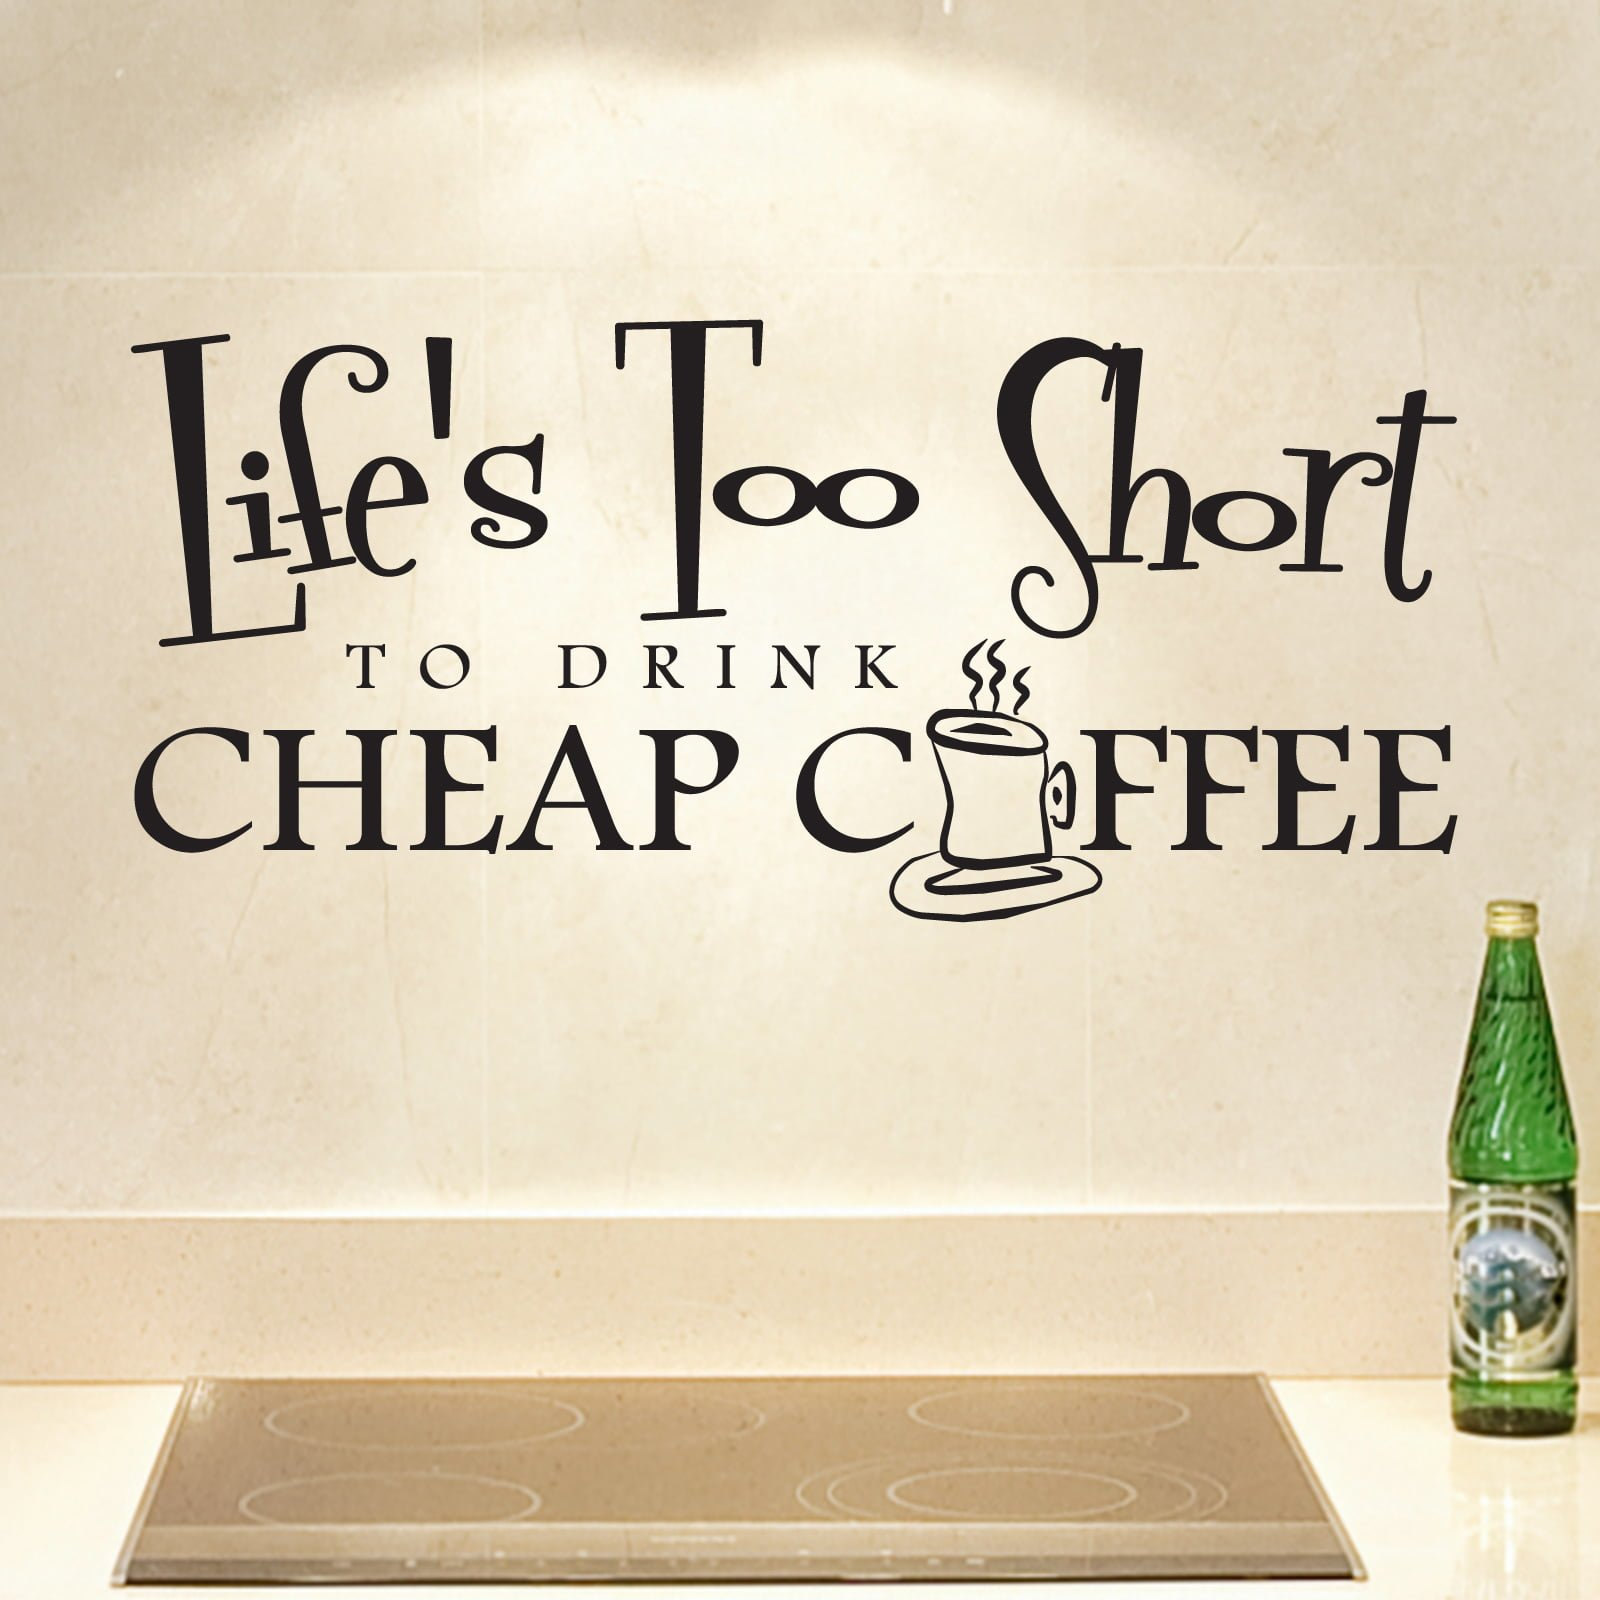 Cheap coffee kitchen quote wall sticker world of wall stickers cheap coffee kitchen quote wall sticker decal a amipublicfo Images